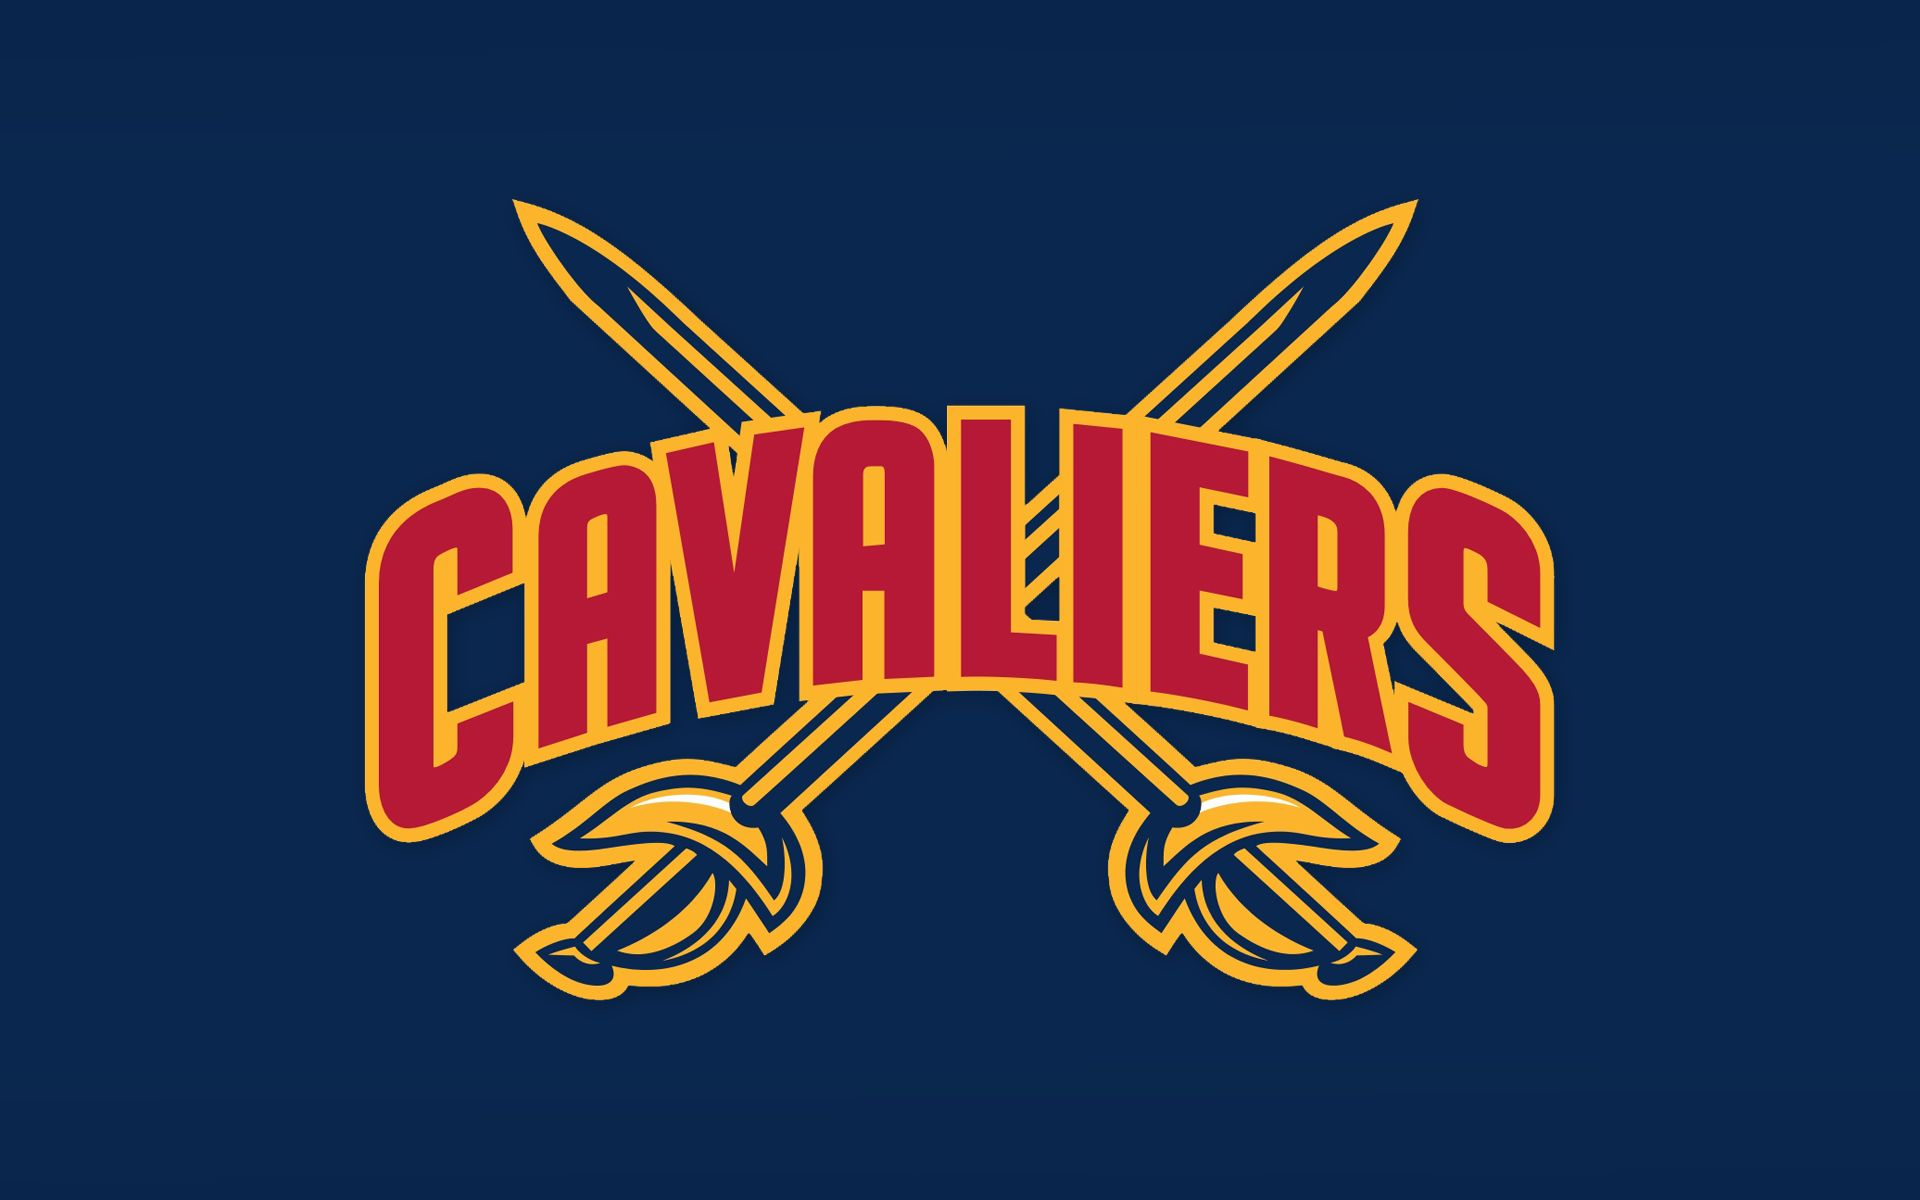 Images Of The Cleveland Cavaliers Logos